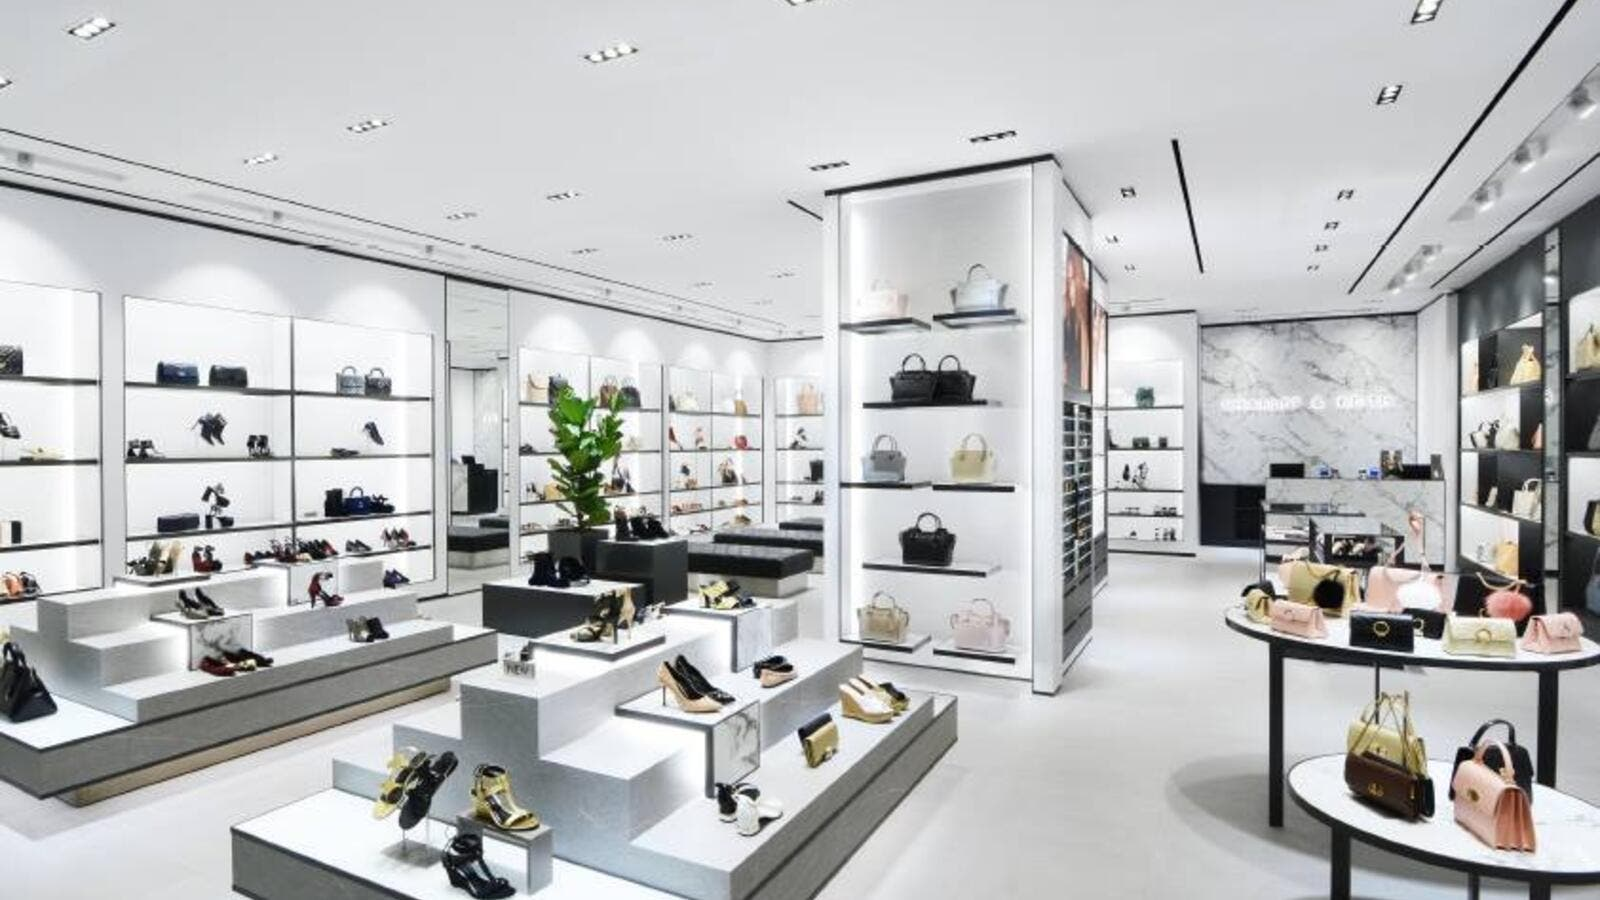 The Charles & Keith store at Vivocity, Singapore. (Facebook)